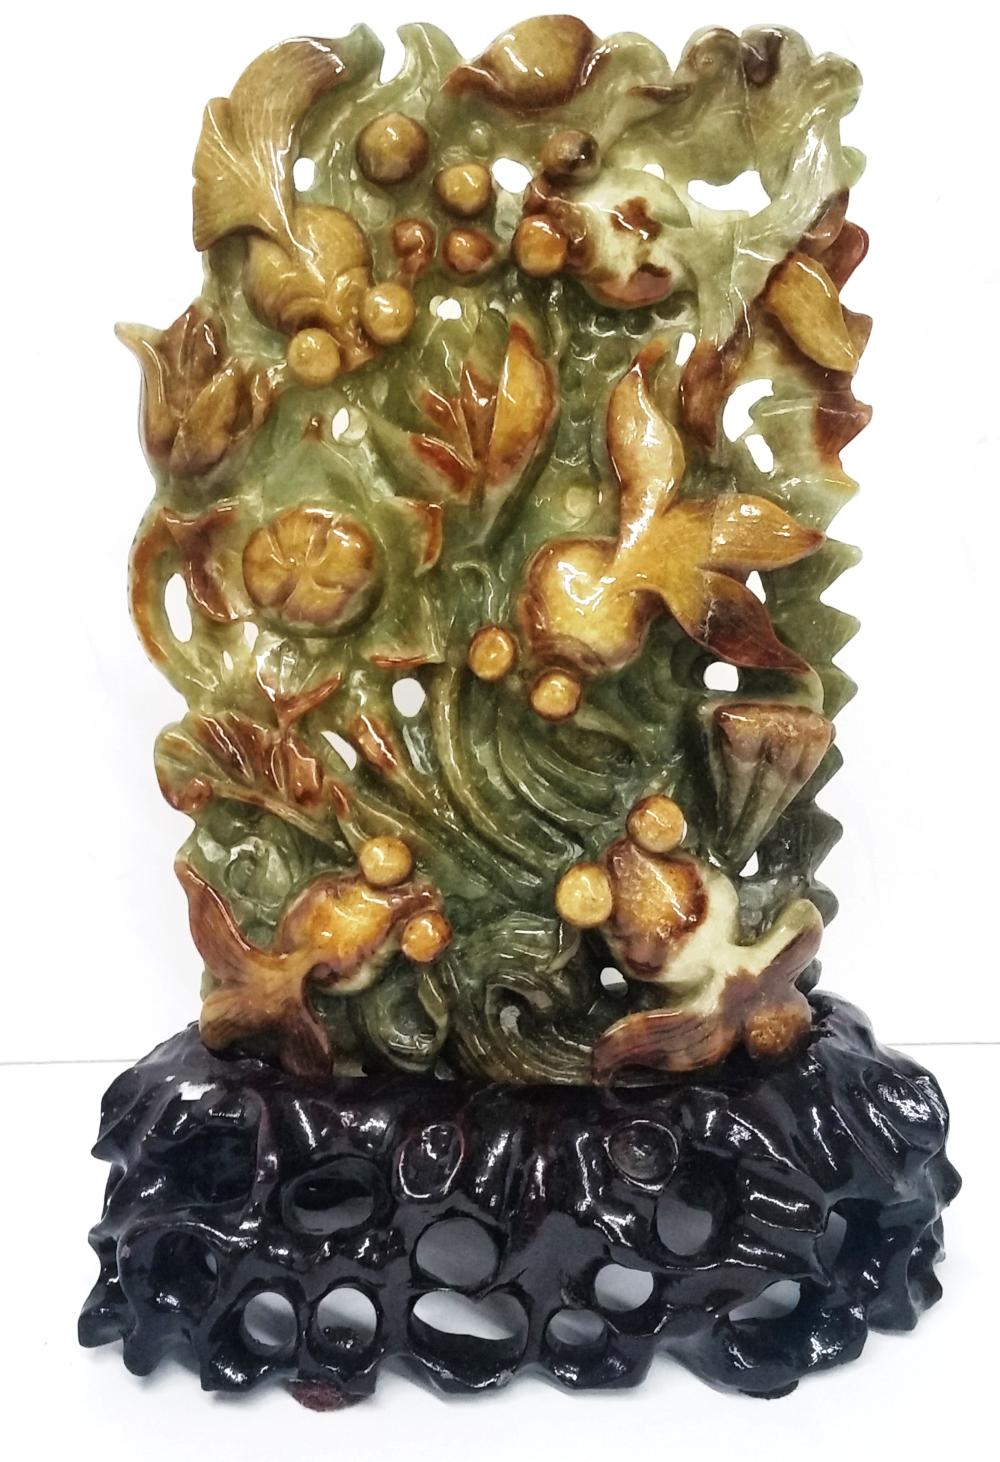 Antique Chinese Asian Rust Green Jadeite Jade Floral Koi Carving Wooden Base